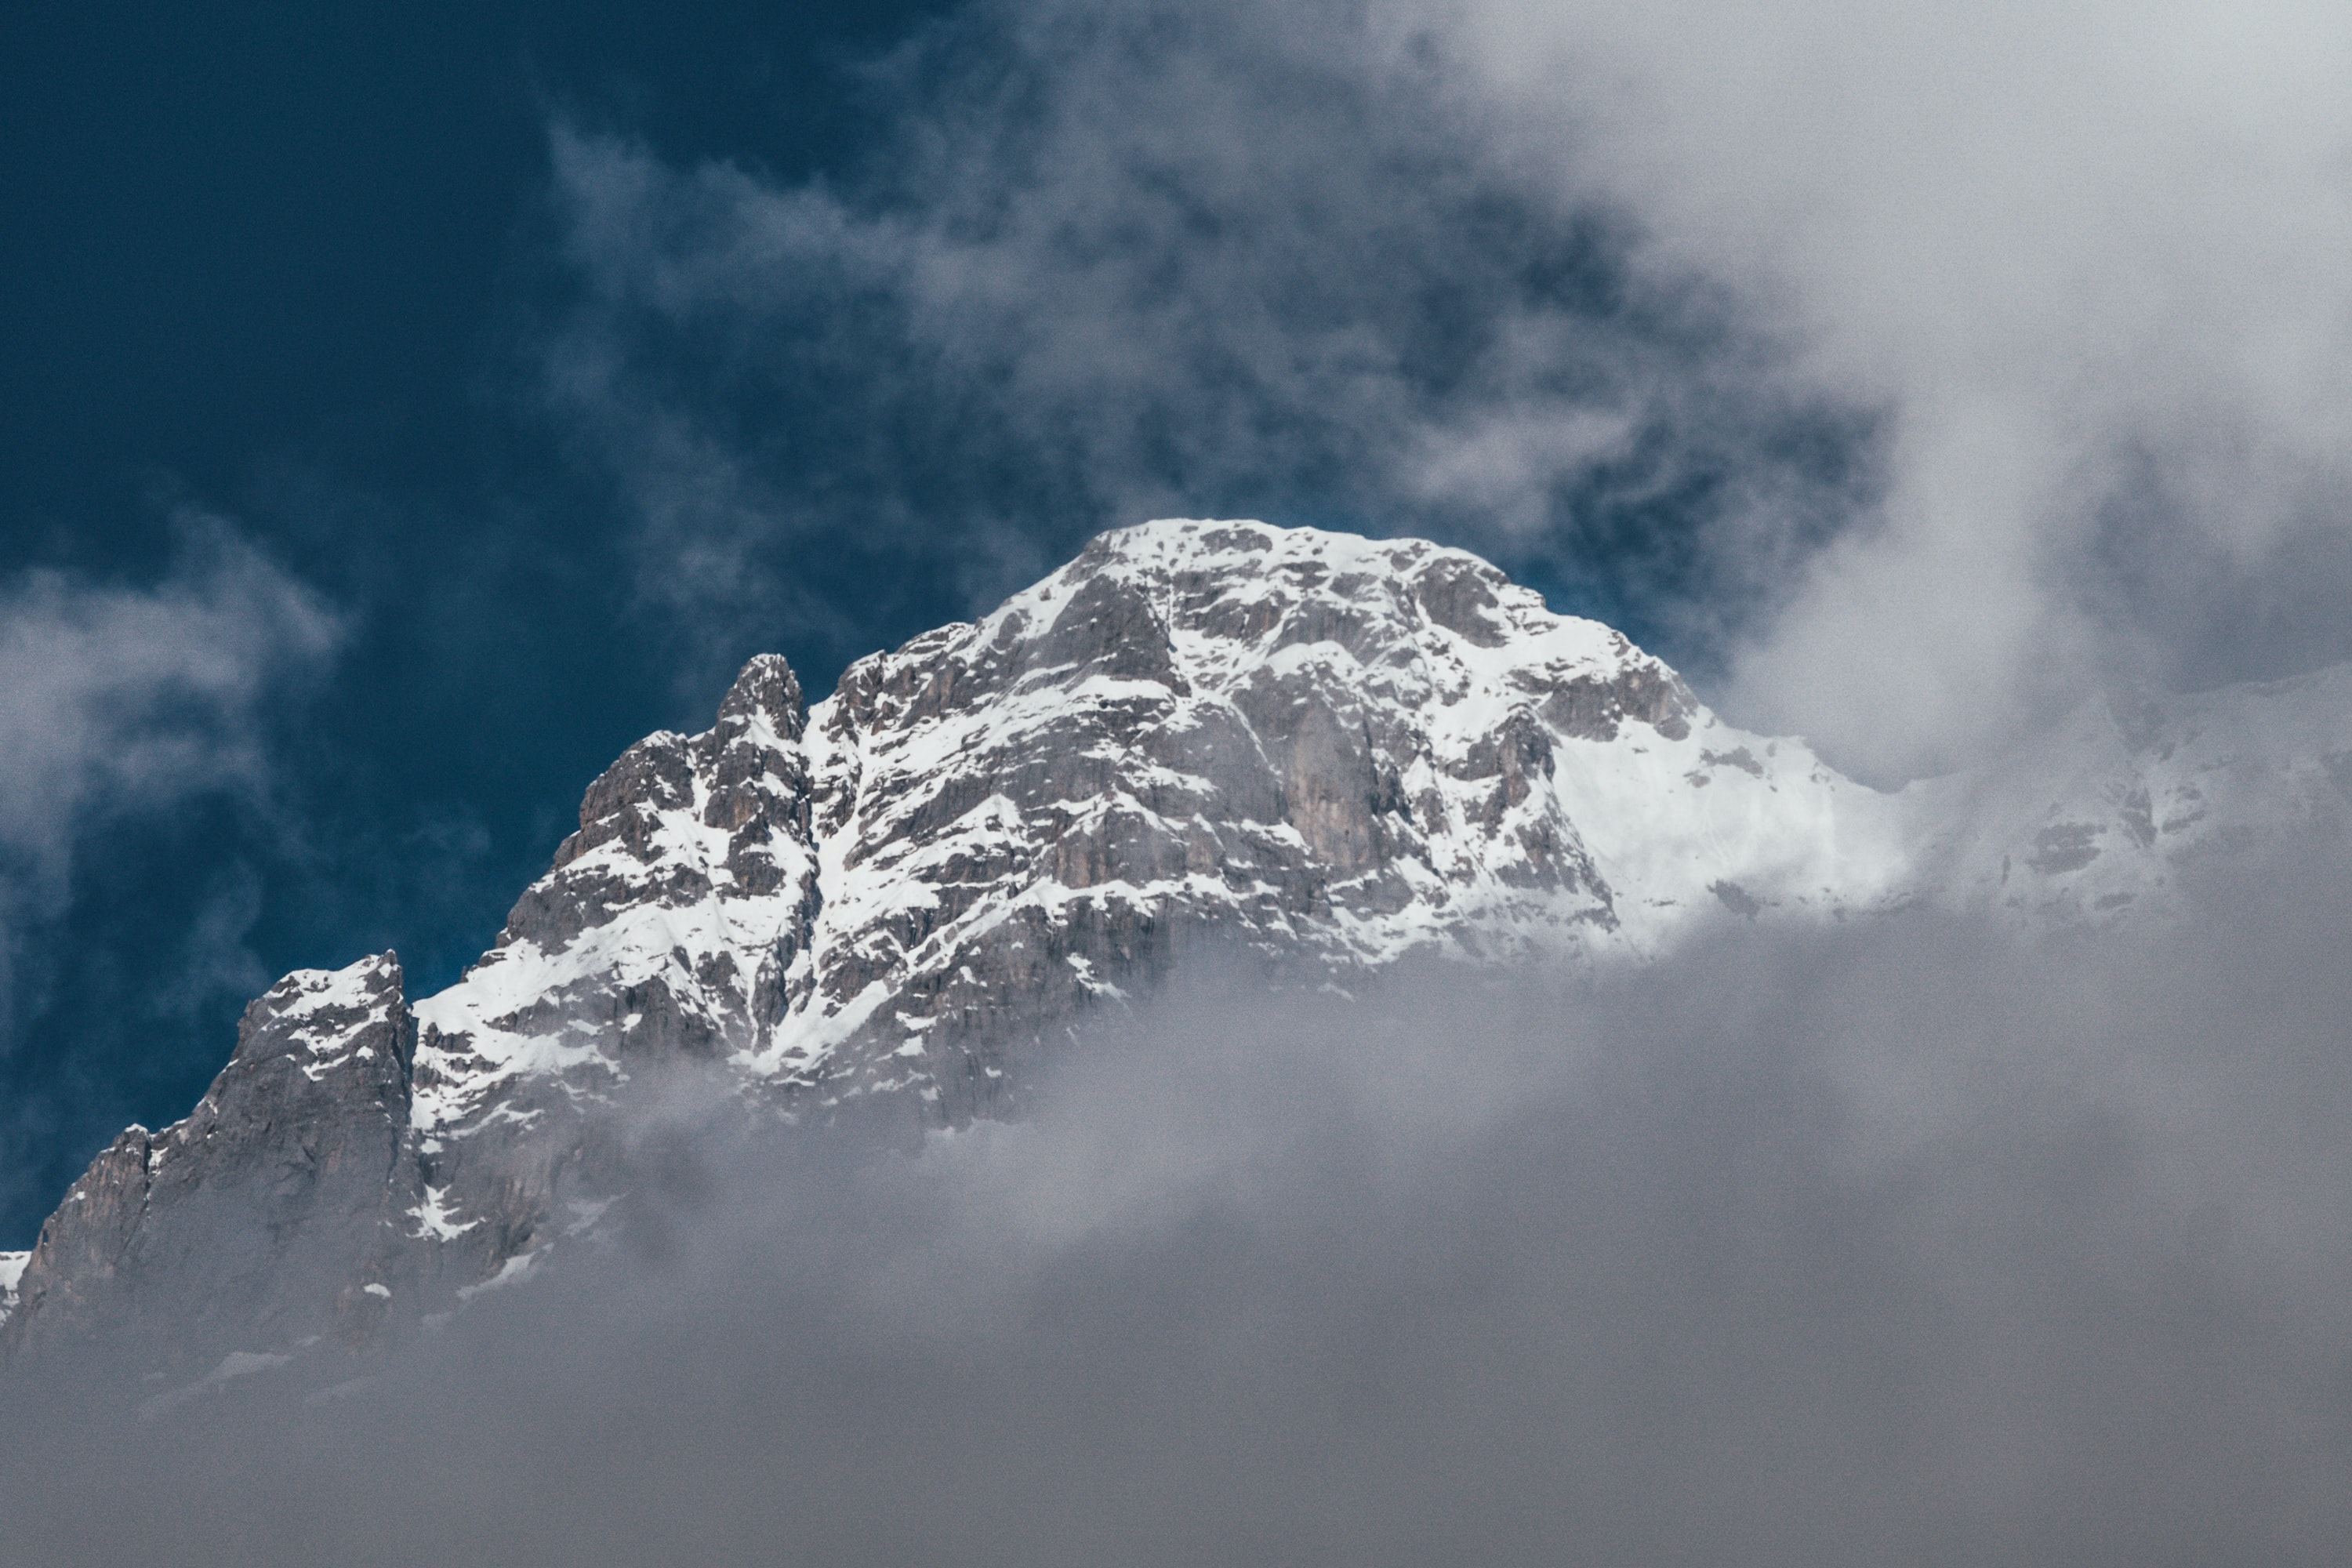 snow covered mountain under blue cloudy sky